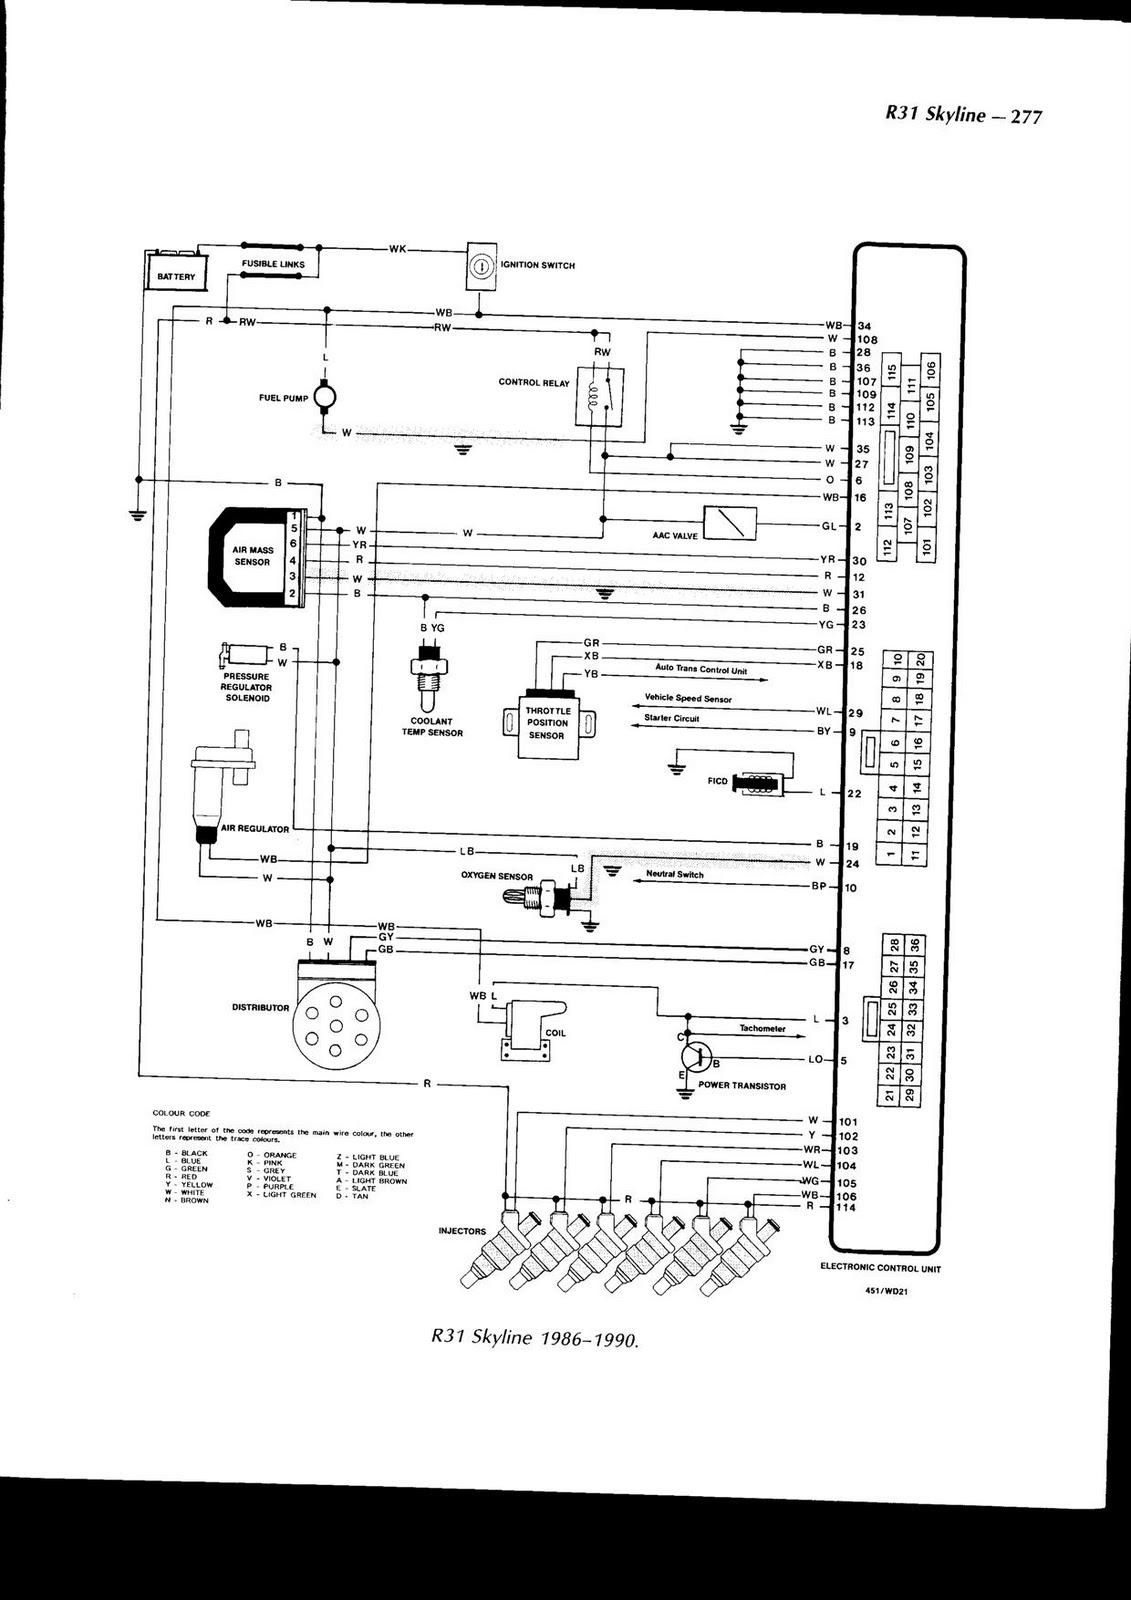 Diagram  Hdmi Pinout Wiring Diagram Full Version Hd Quality Wiring Diagram